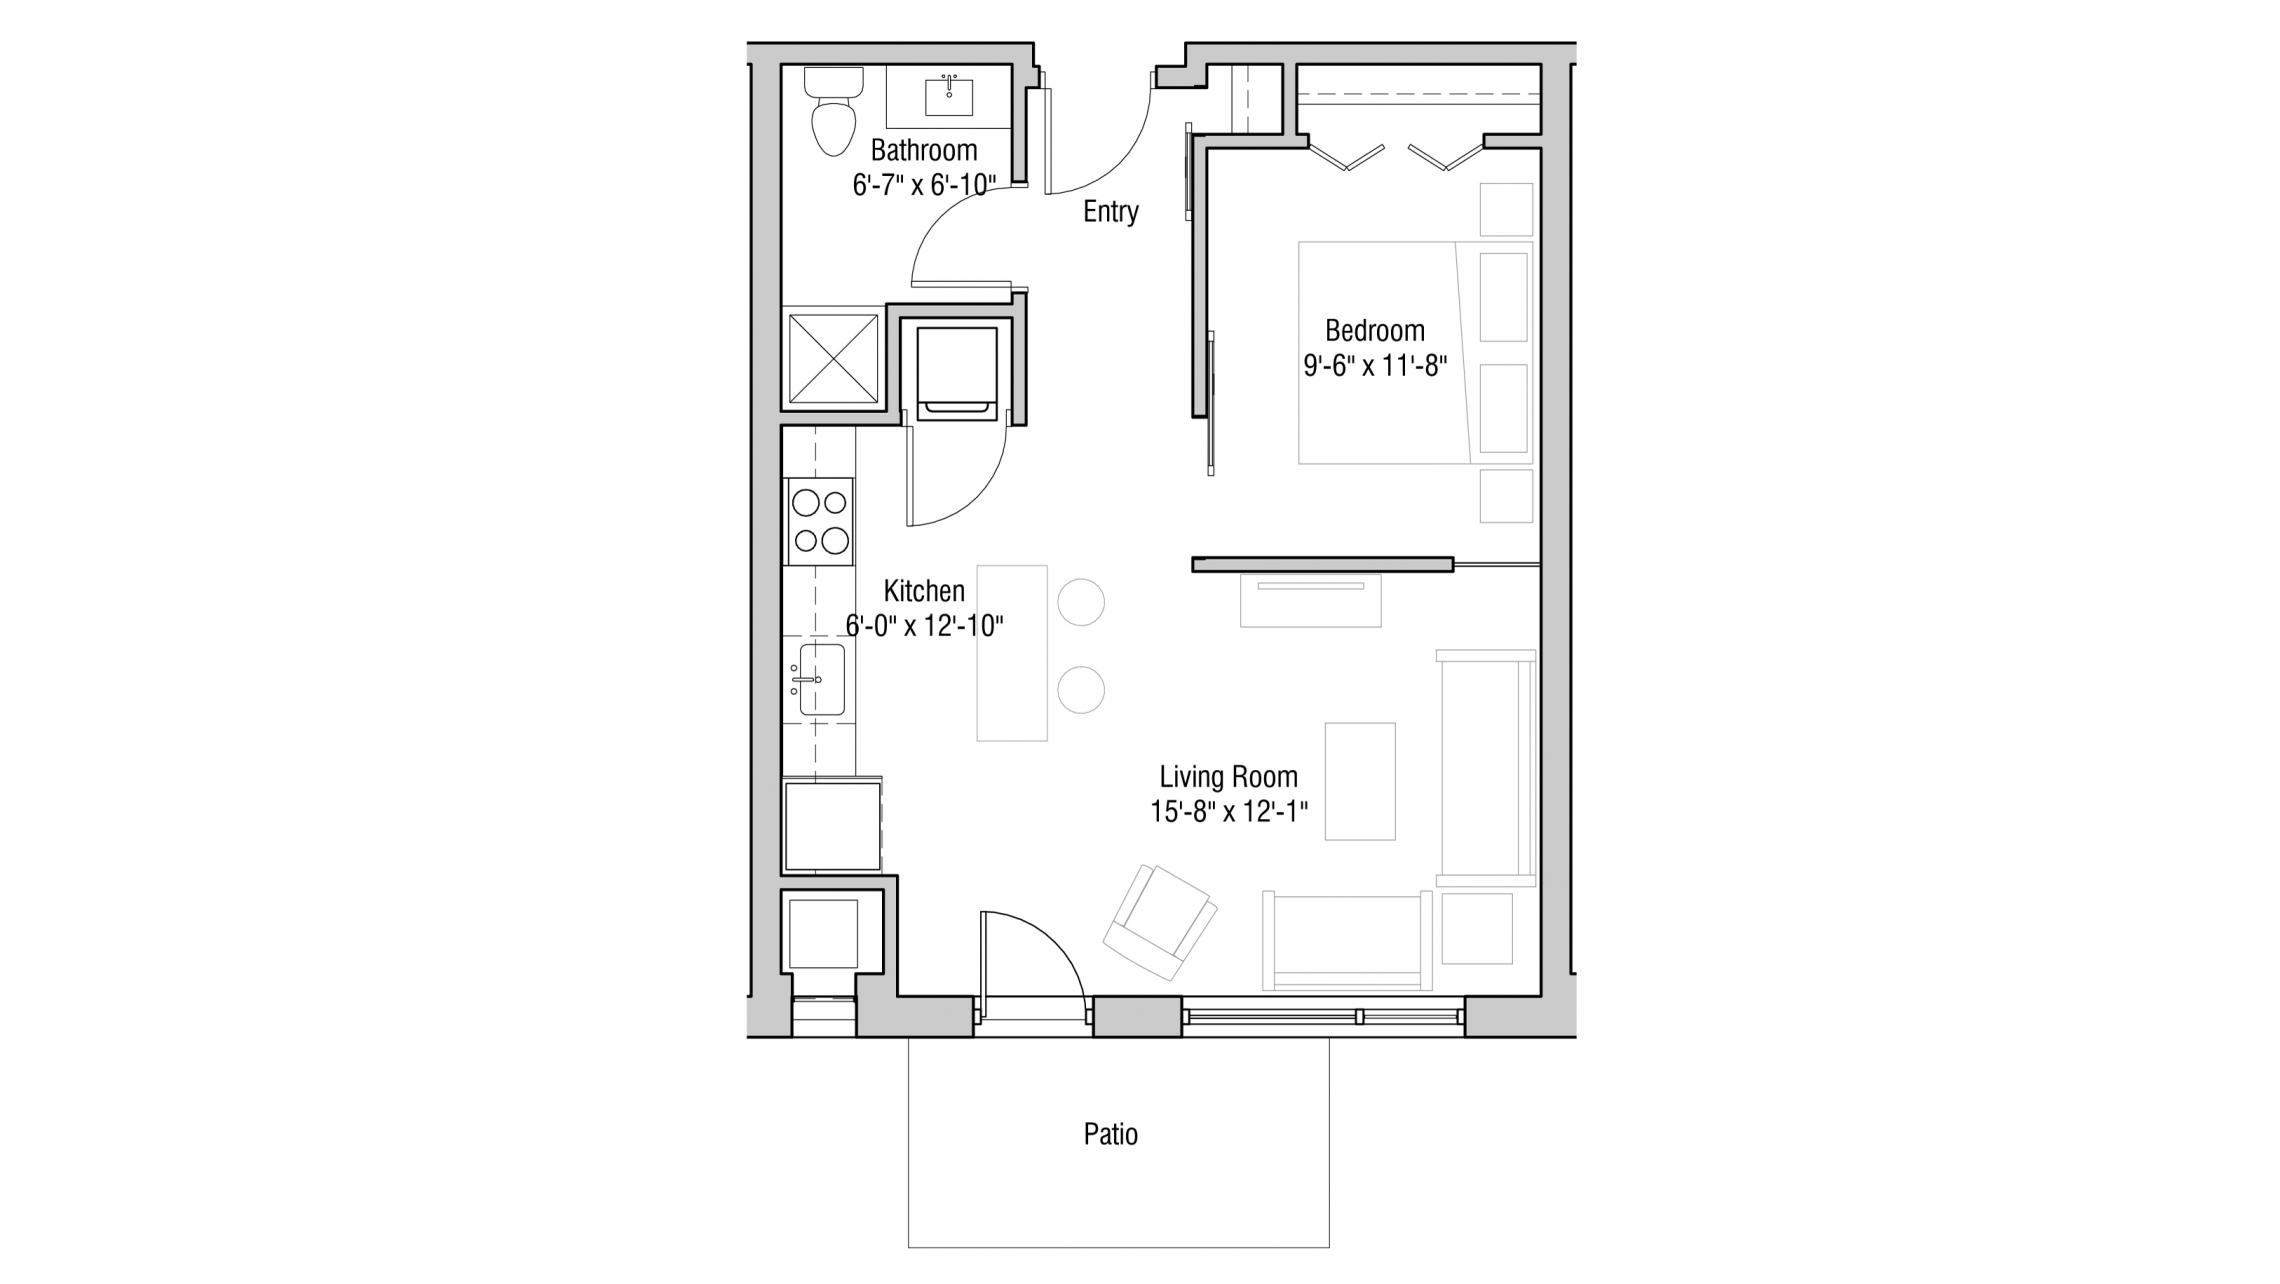 ULI Quarter Row 118 - One Bedroom, One Bathroom